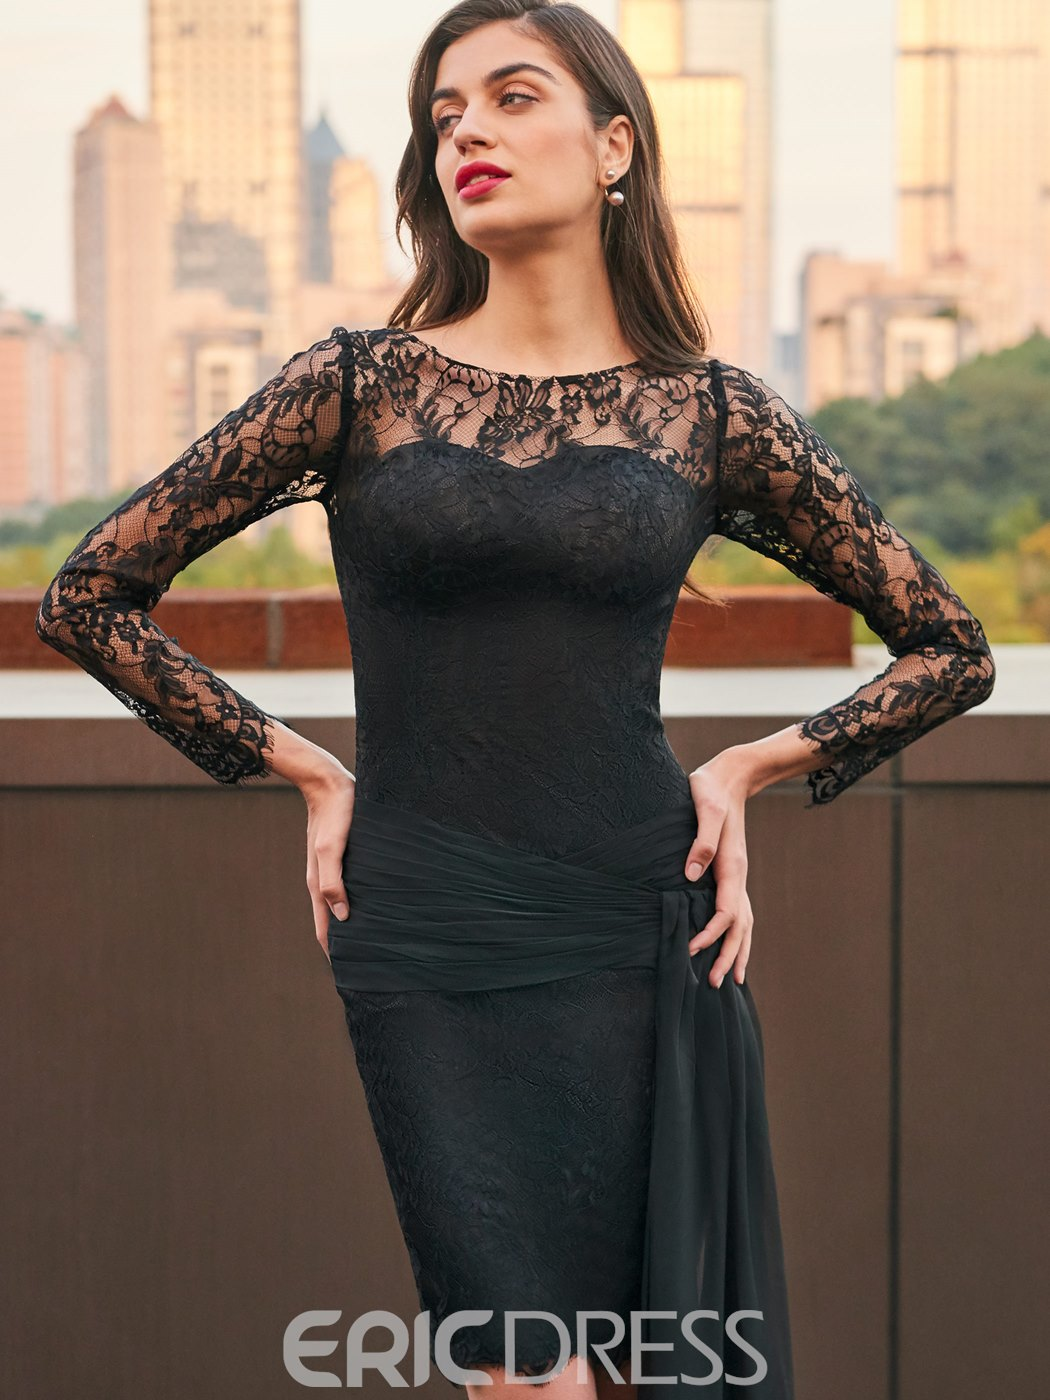 Ericdress Sheath Long Sleeve Lace Black Cocktail Party Dress